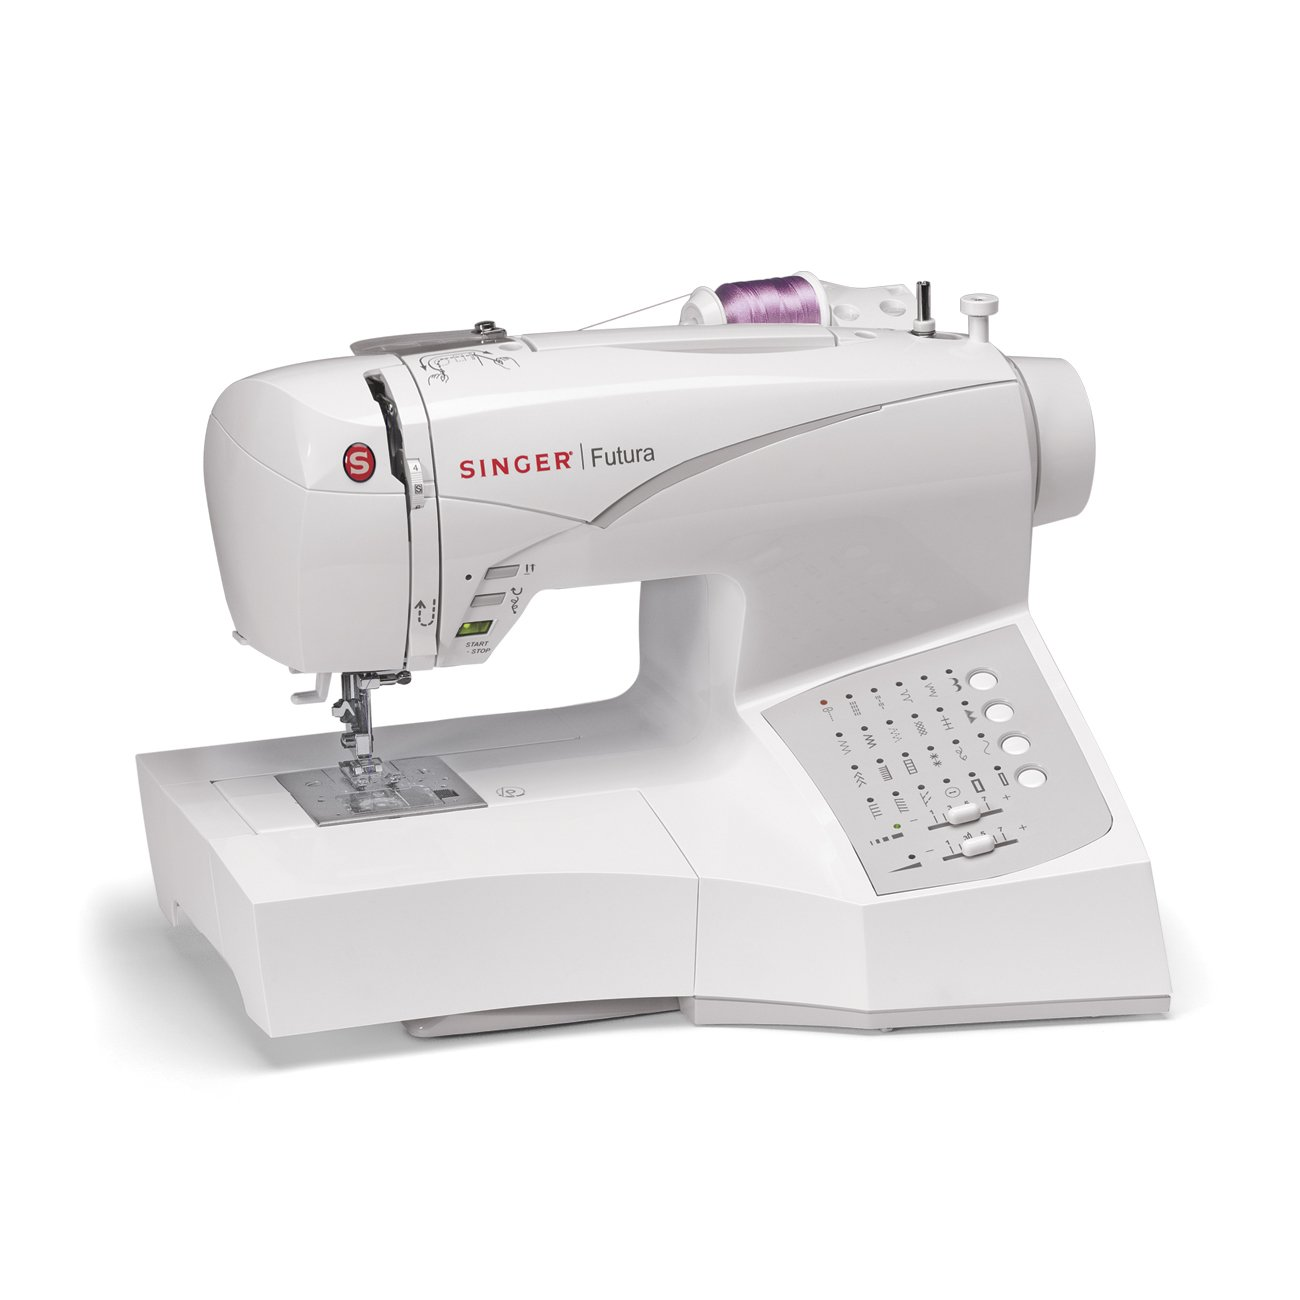 futura sewing and embroidery machine